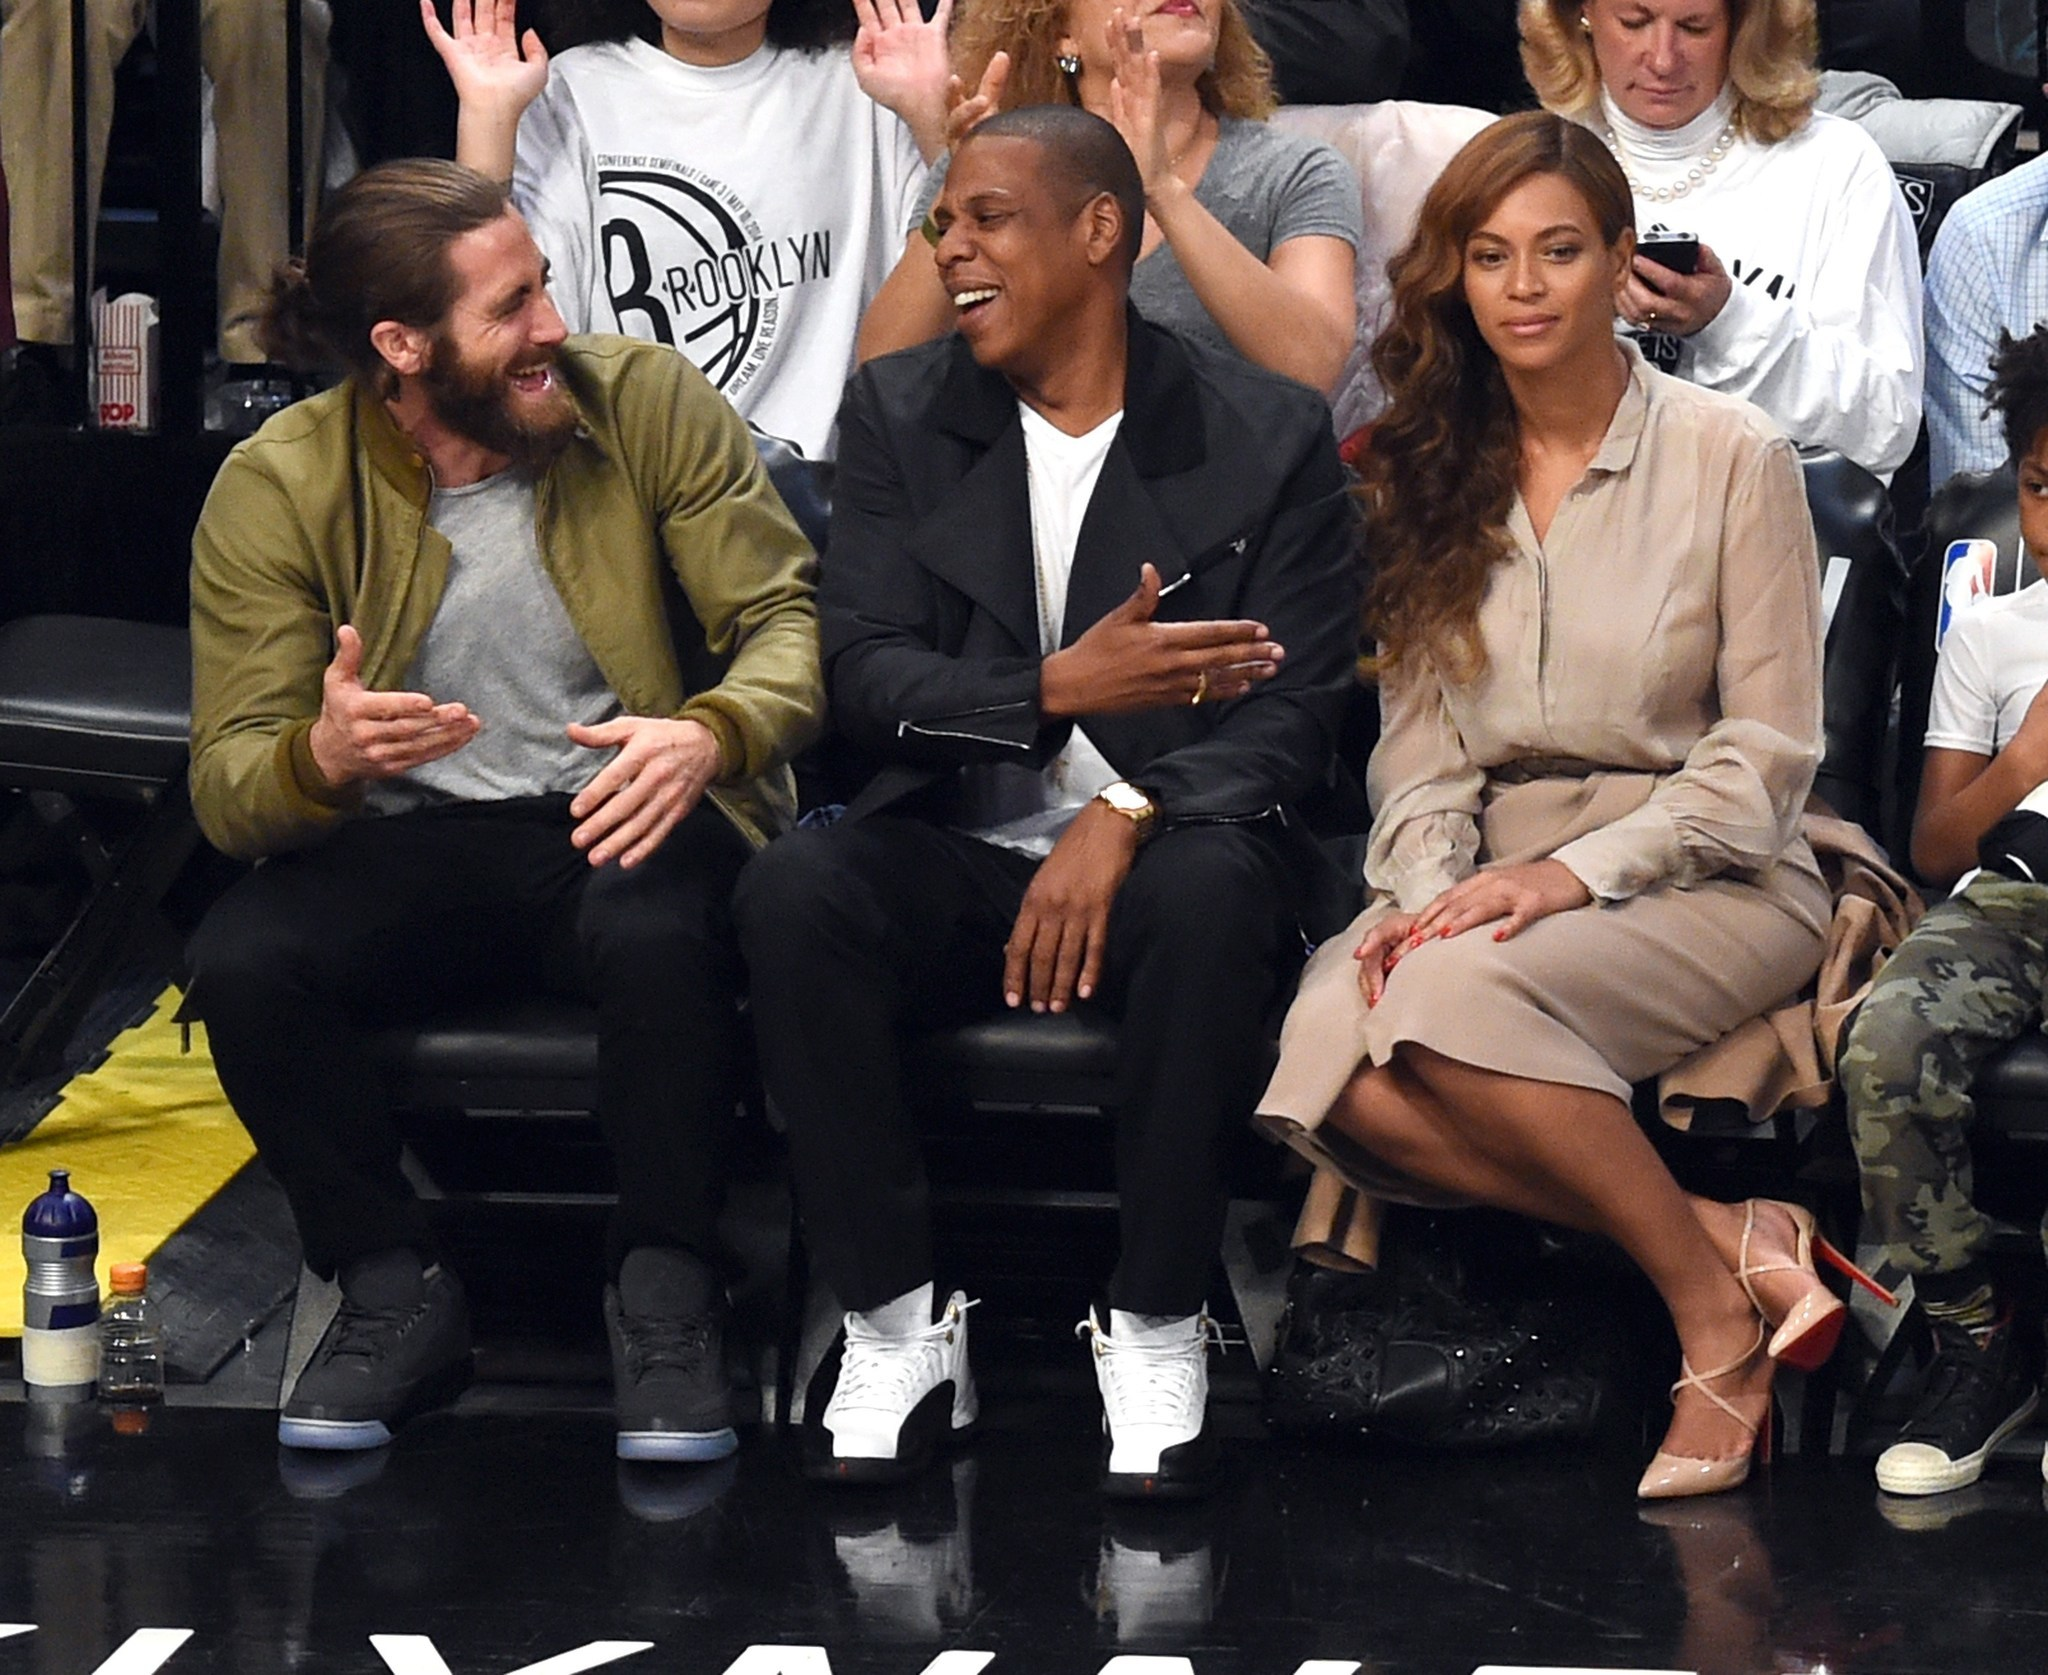 Celebs spotted at Miami Heat games - Jake Gyllenhaal, Jay Z and Beyonce